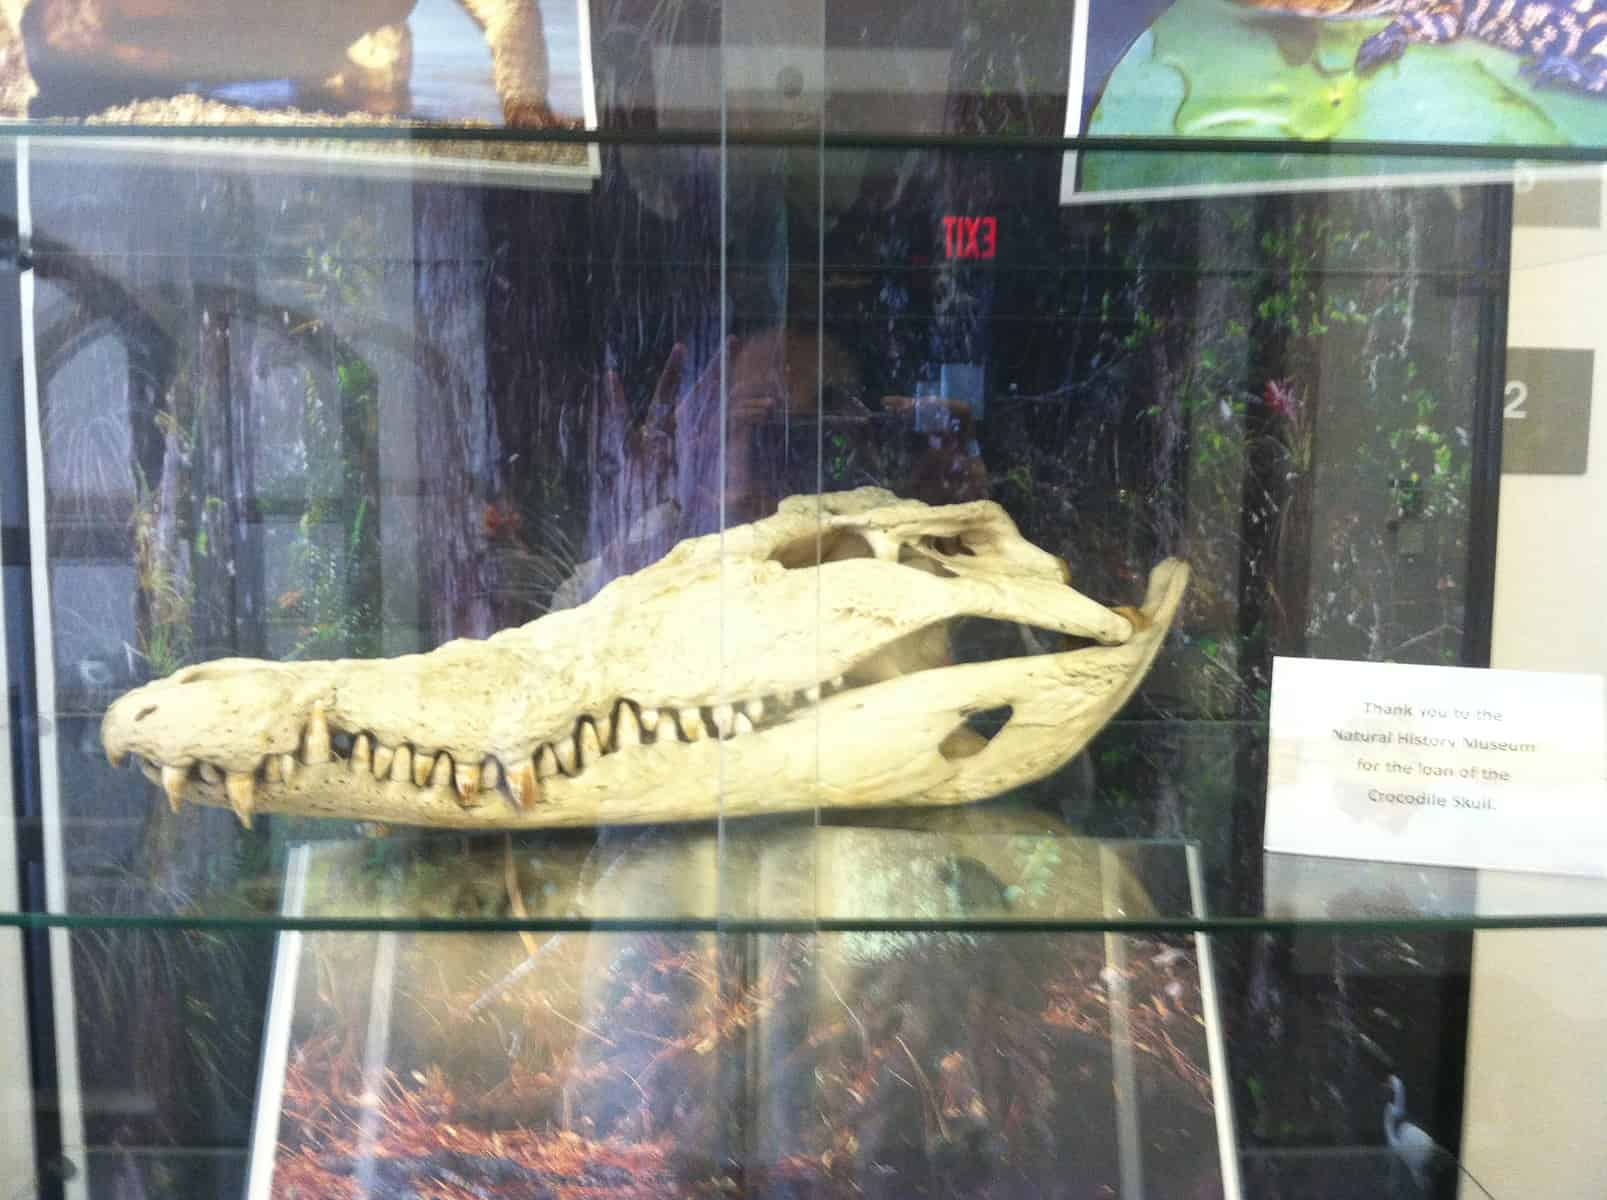 Crocodile Skull from the UI Museum of Natural History